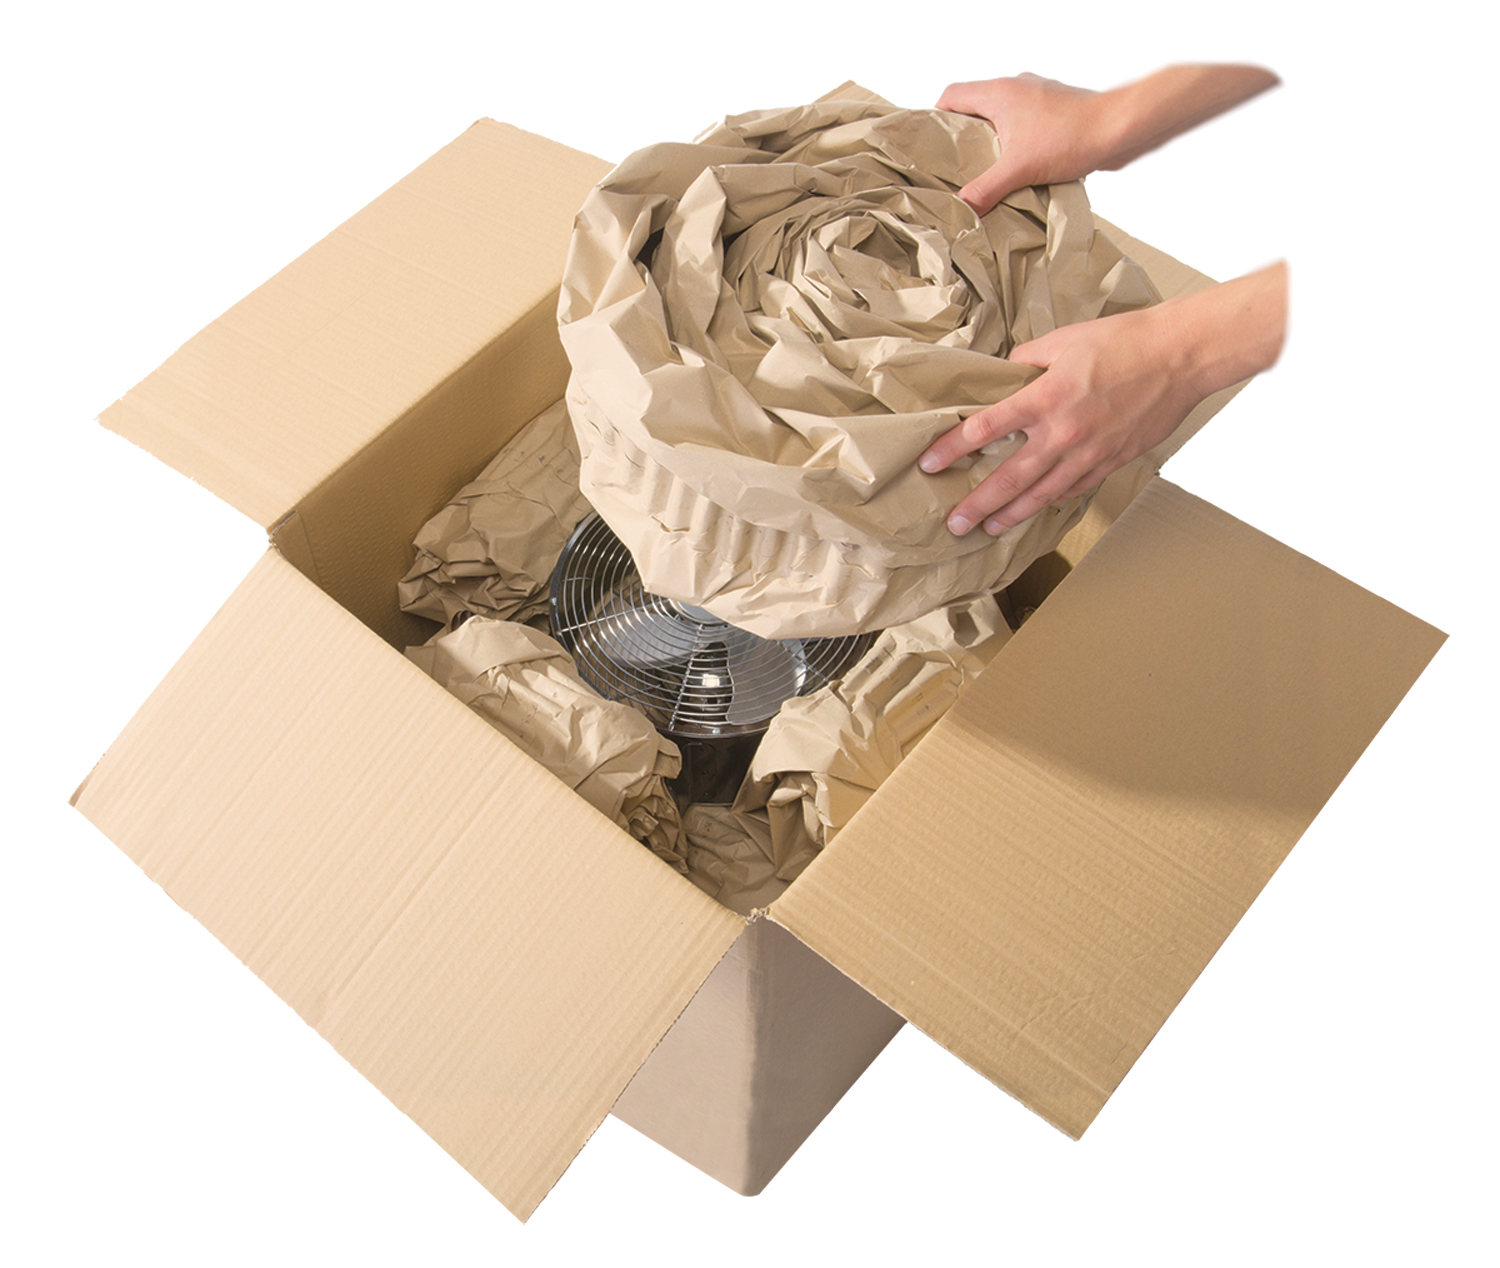 Easypack fan pack coiling rapid packaging 1